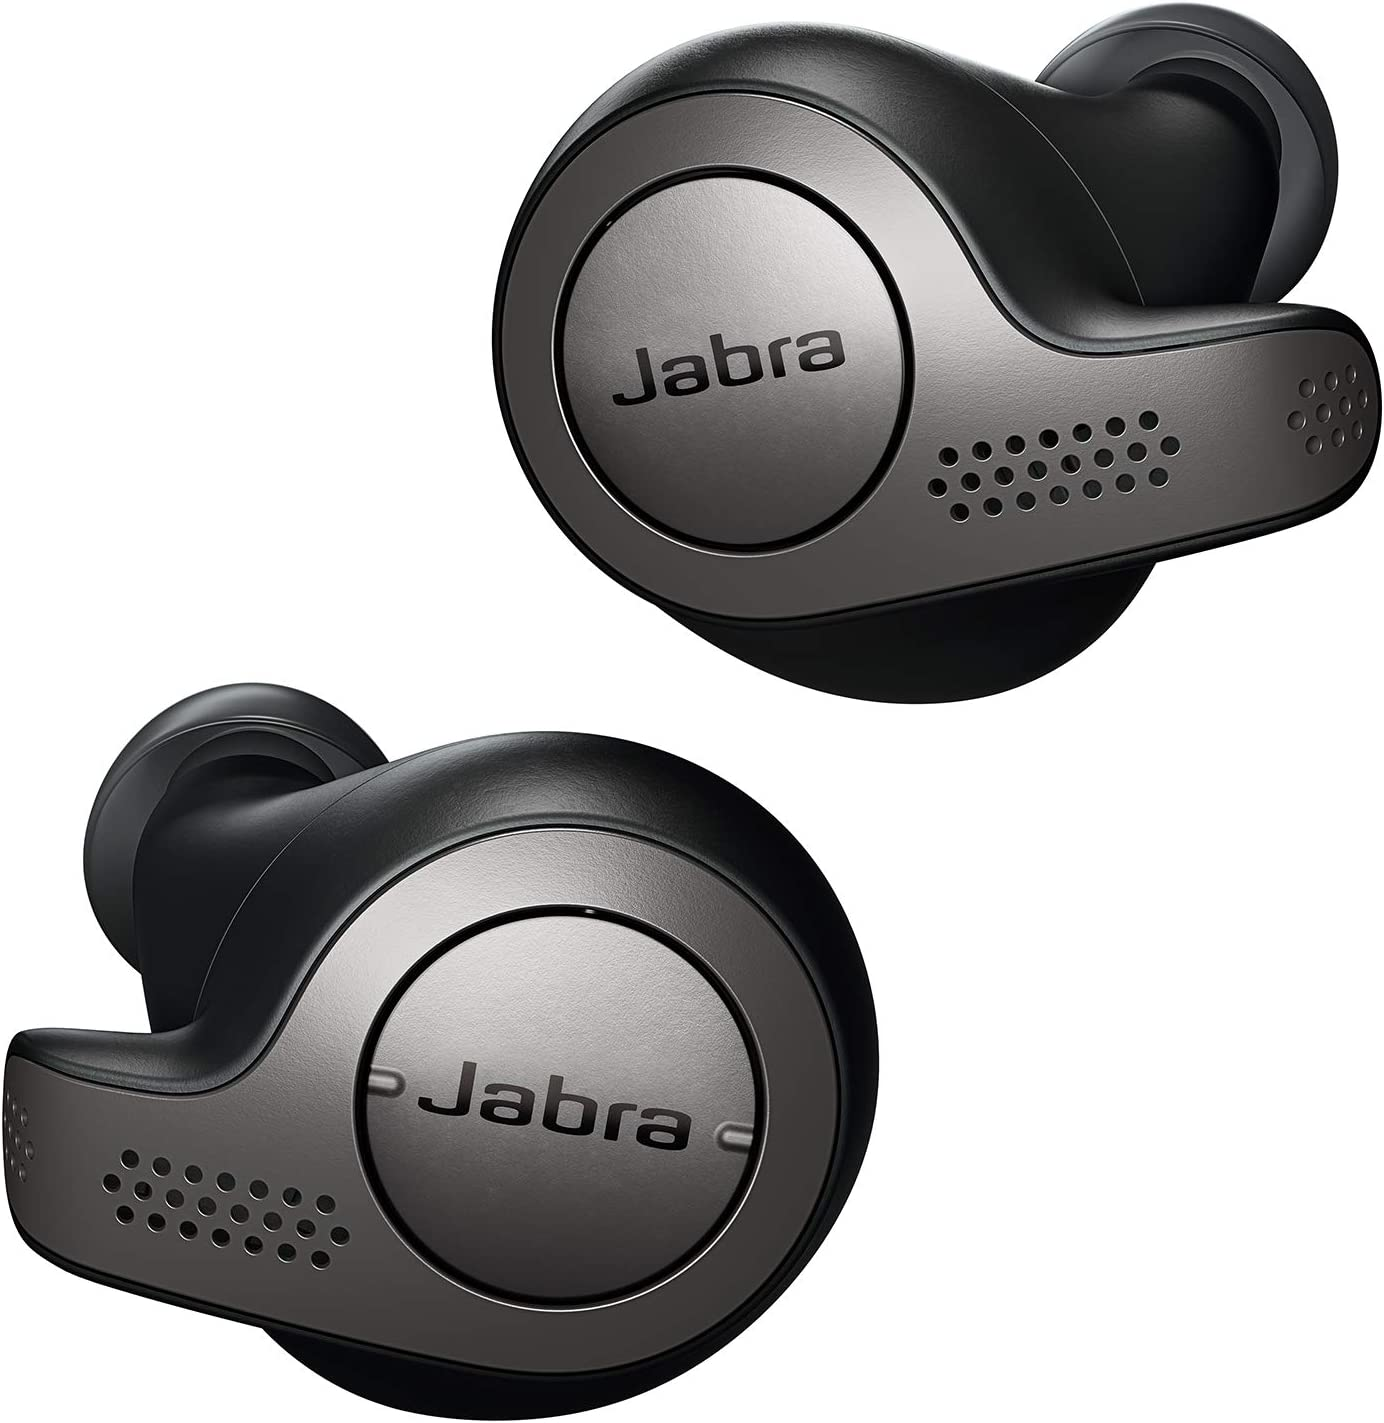 Jabra Elite 65t Alexa Enabled True Wireless Earbuds with Charging Case - Titanium Black (Renewed)